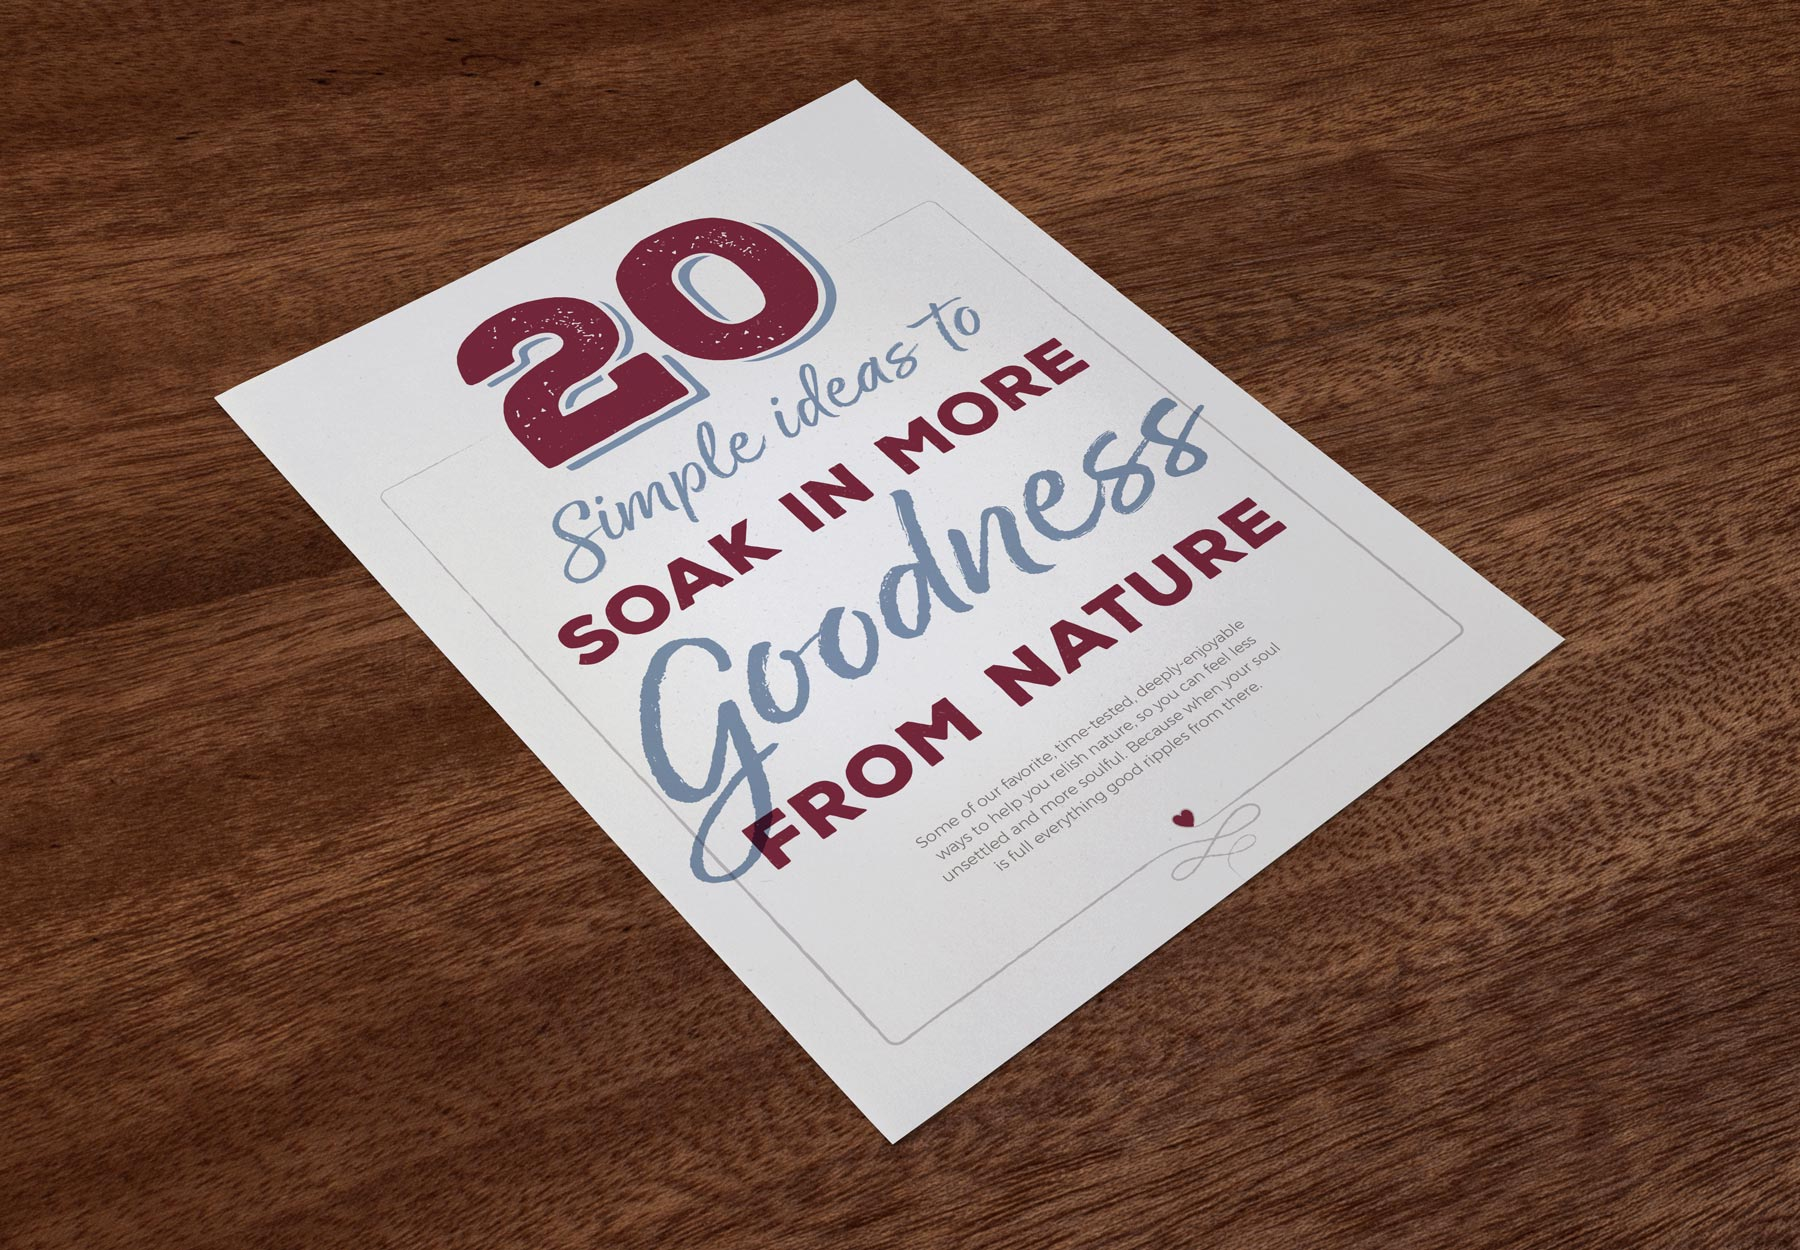 20 Simple Ideas to Soak in More Goodness from Nature